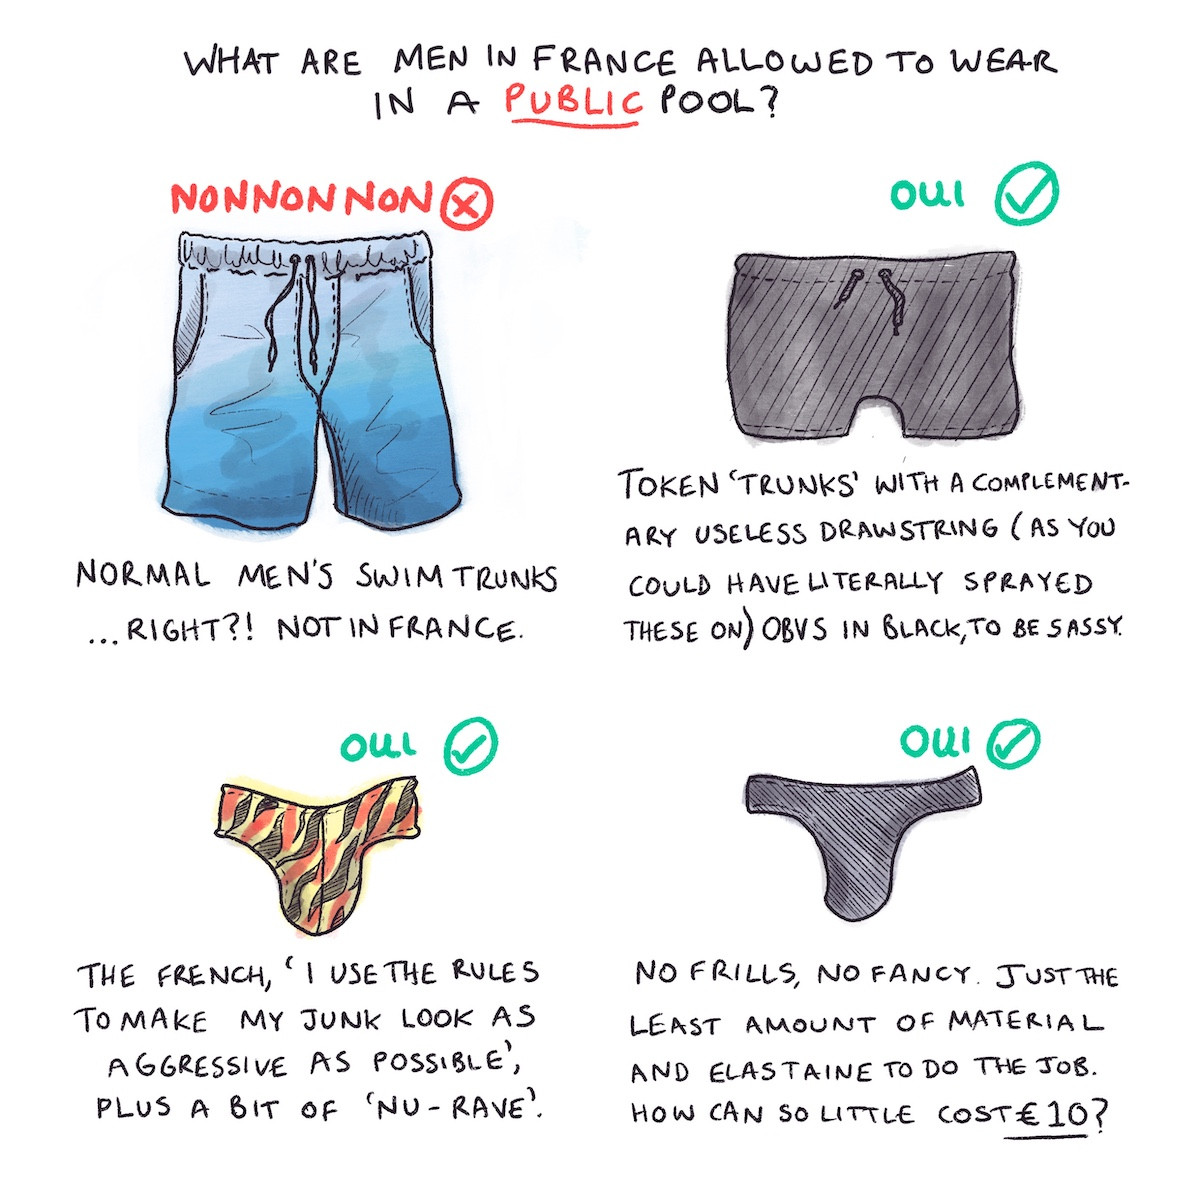 French Swimming Trunk Rules